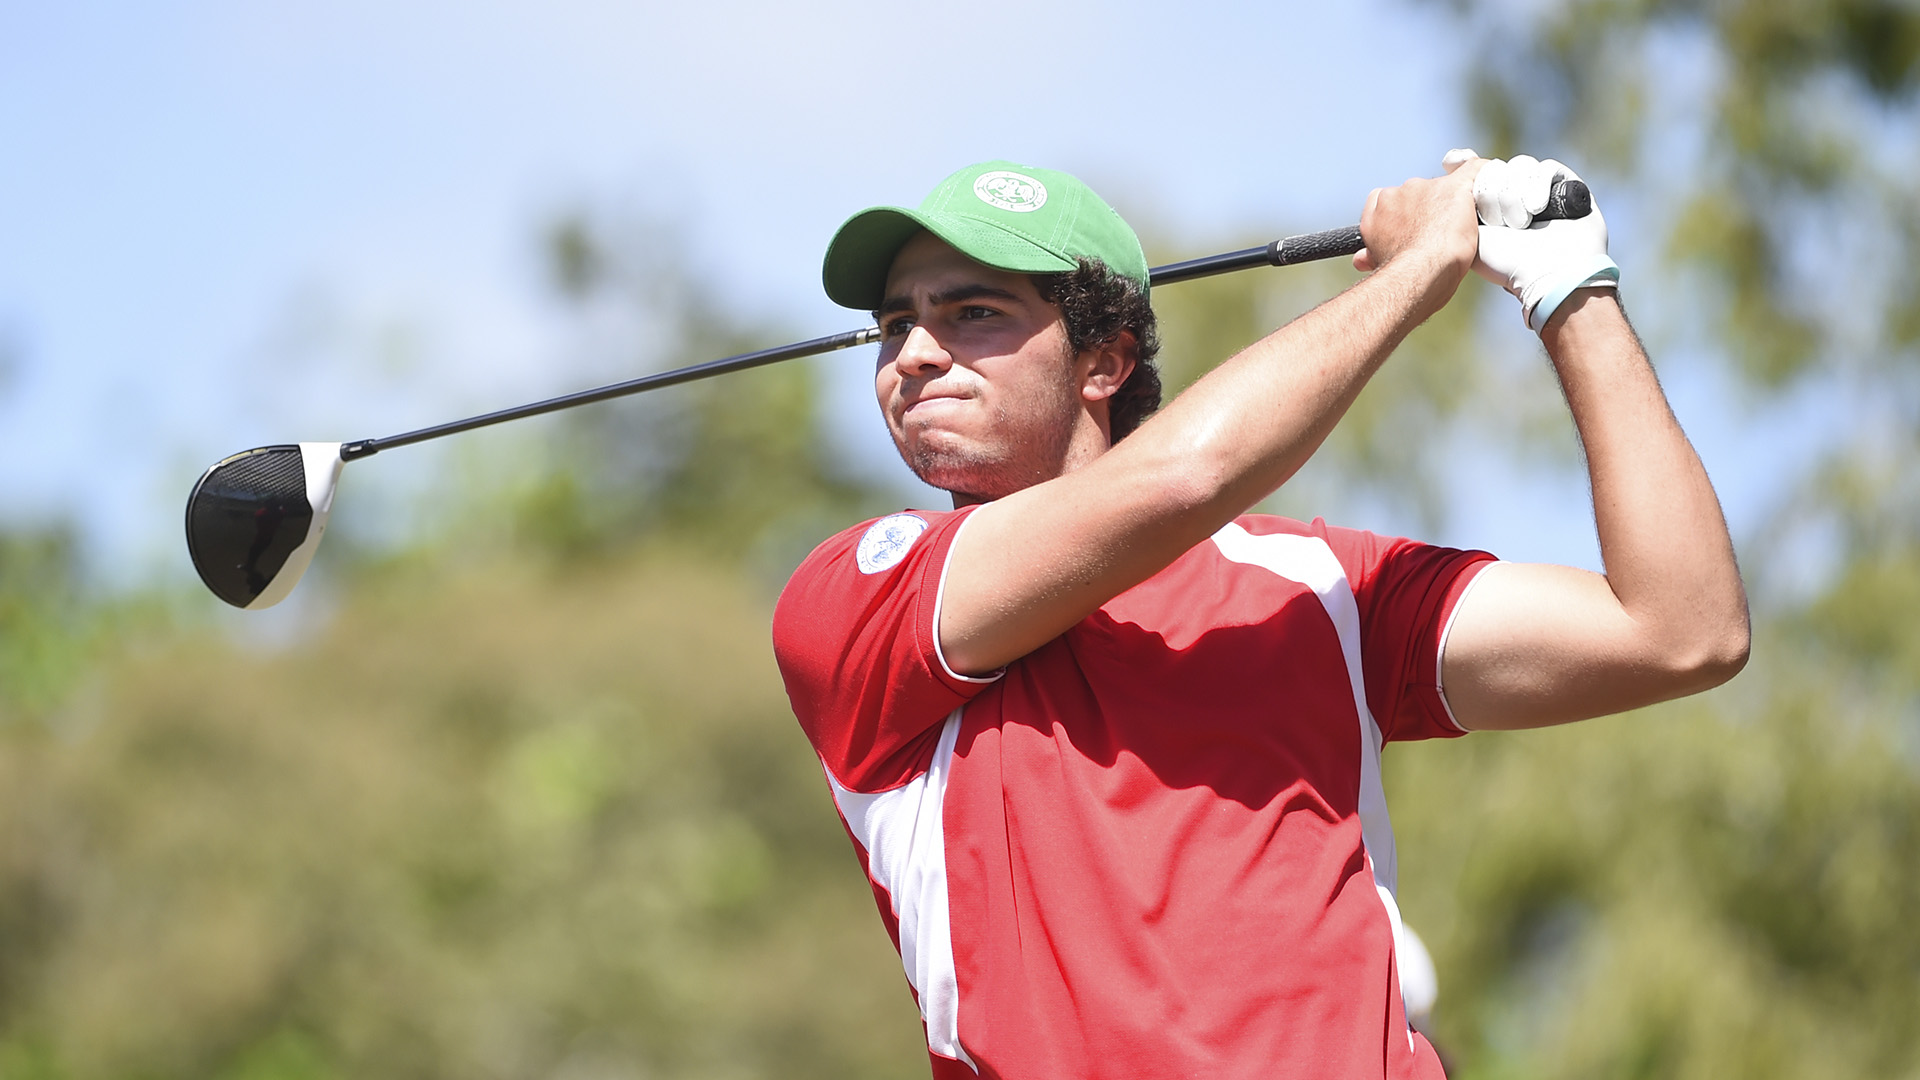 Panama City, Panama:Alvaro Ortiz of Mexico pictured at the 2017 Latin America Amateur Championship at the Club de Golf de Panama during Round Three on January 14th . (Photo by Enrique Berardi/LAAC)